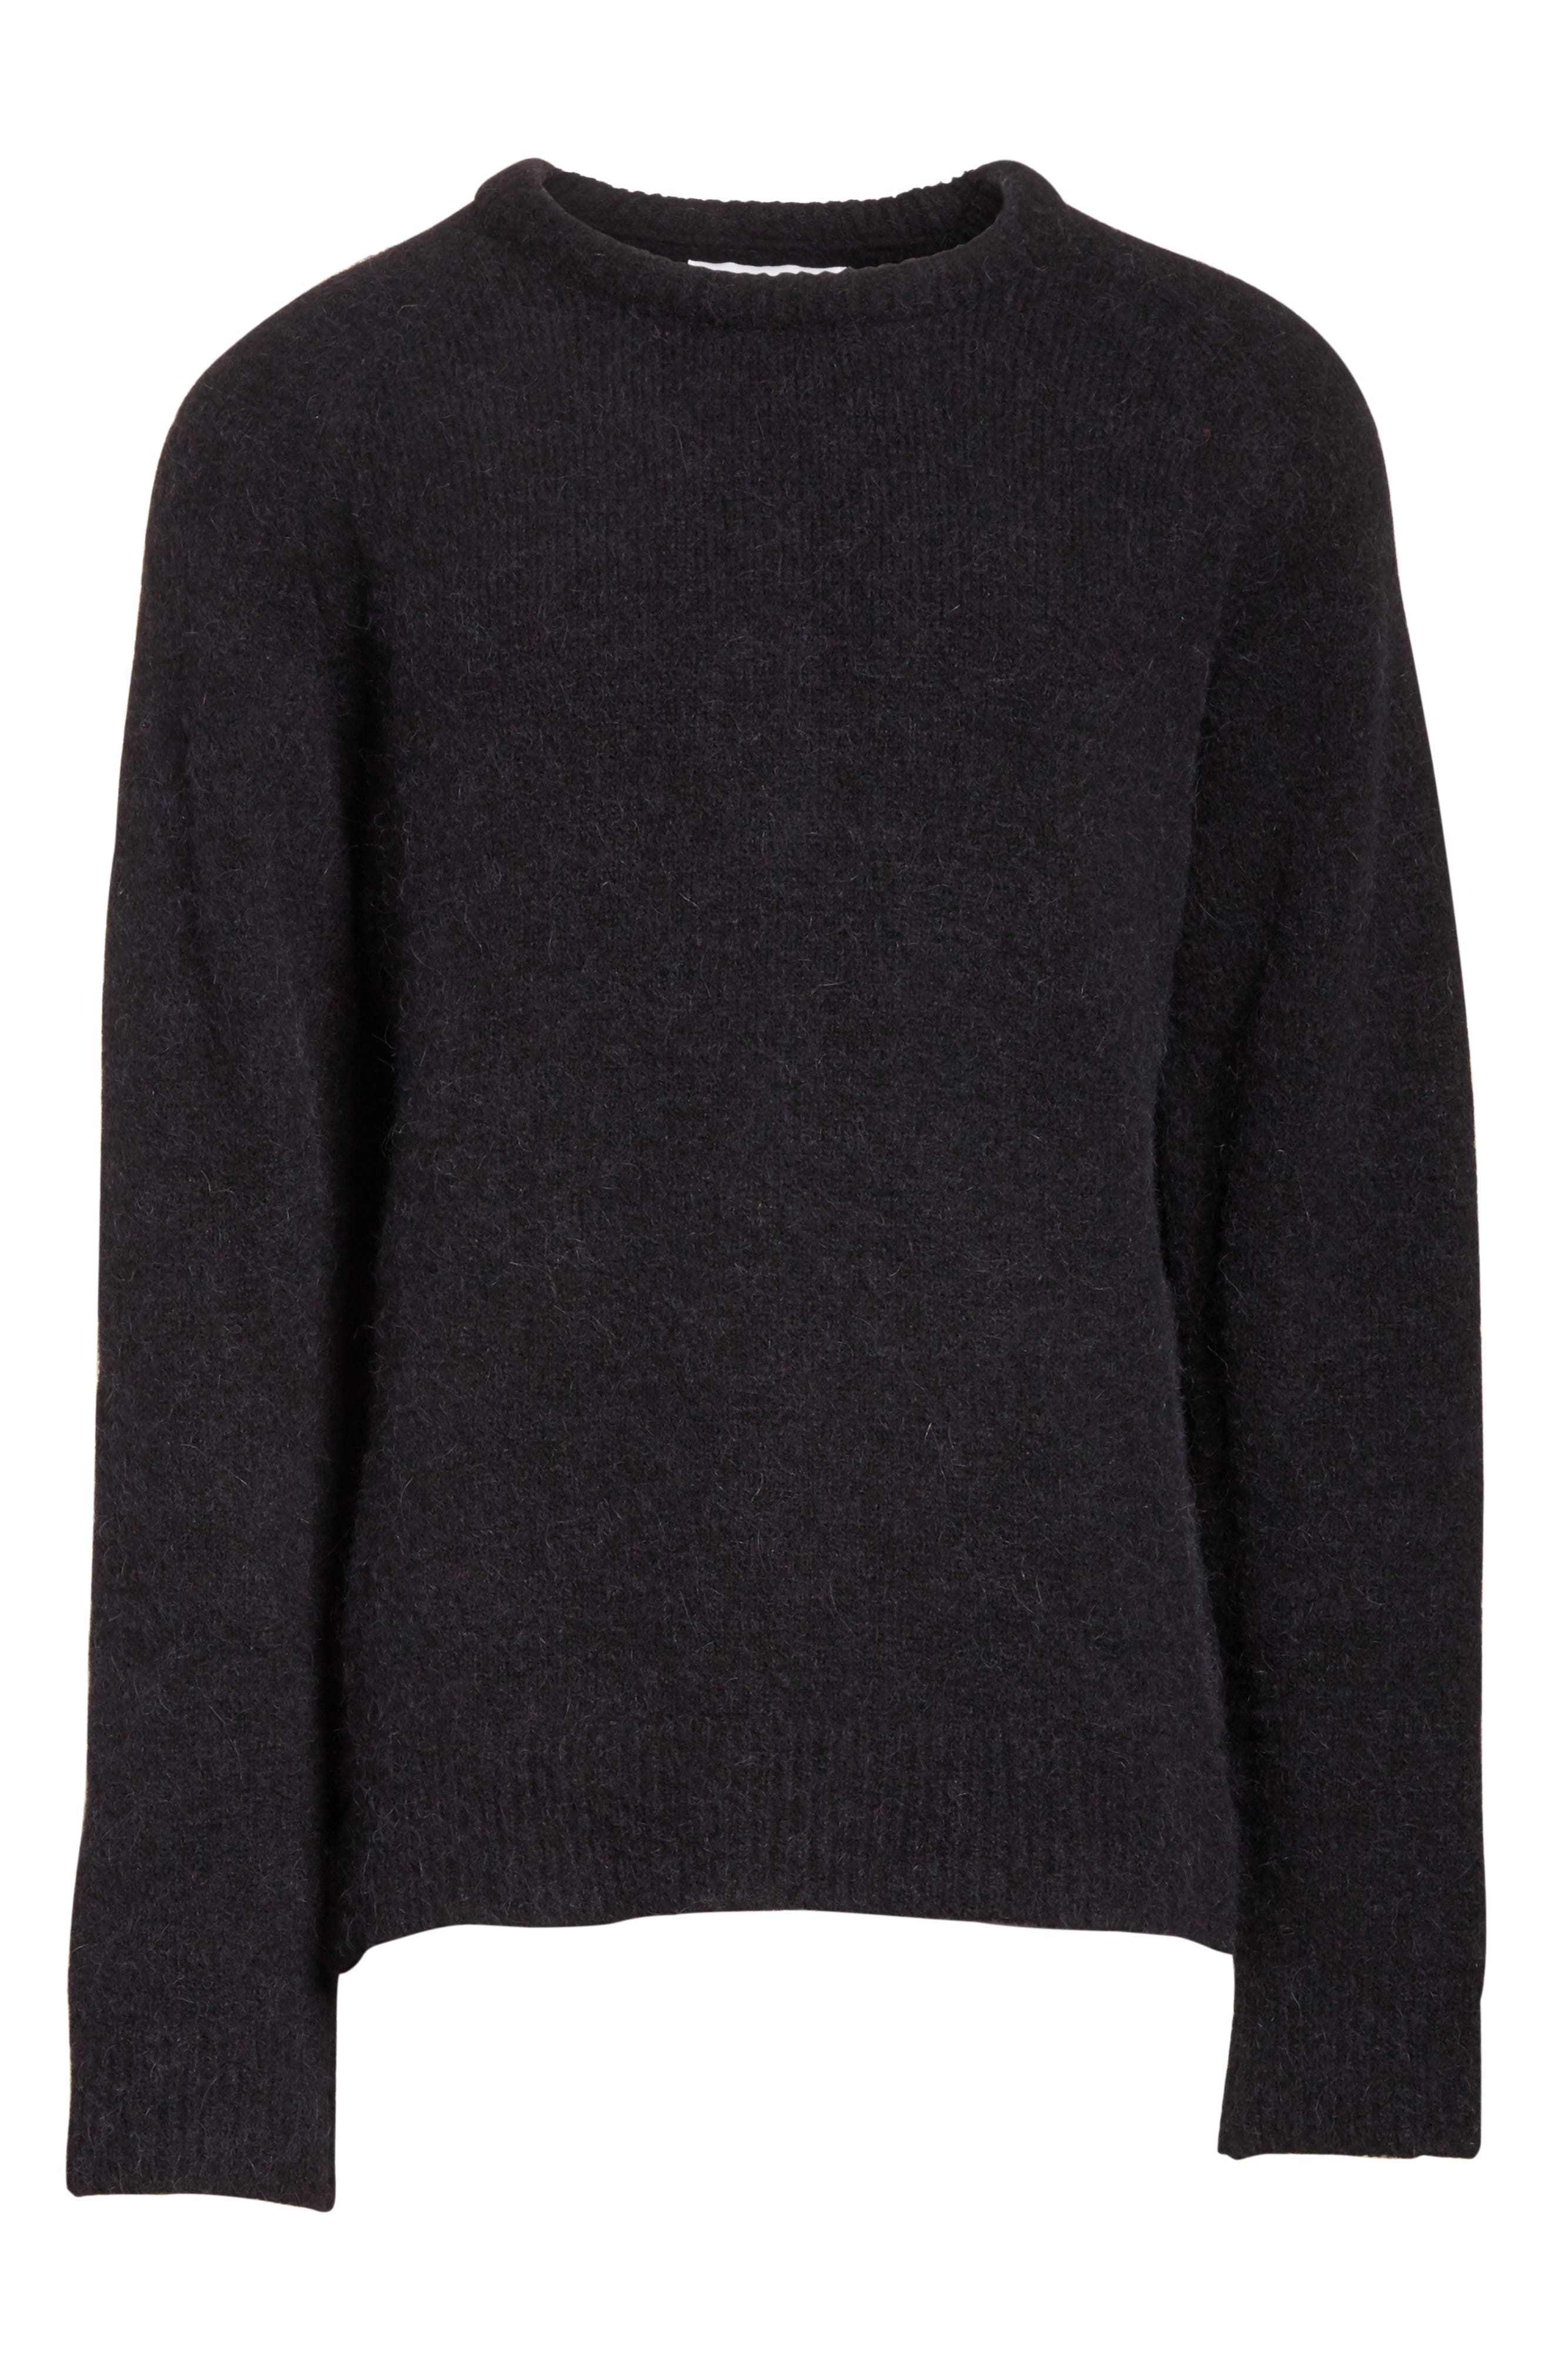 Wool Blend Crewneck Sweater,                             Alternate thumbnail 6, color,                             Black